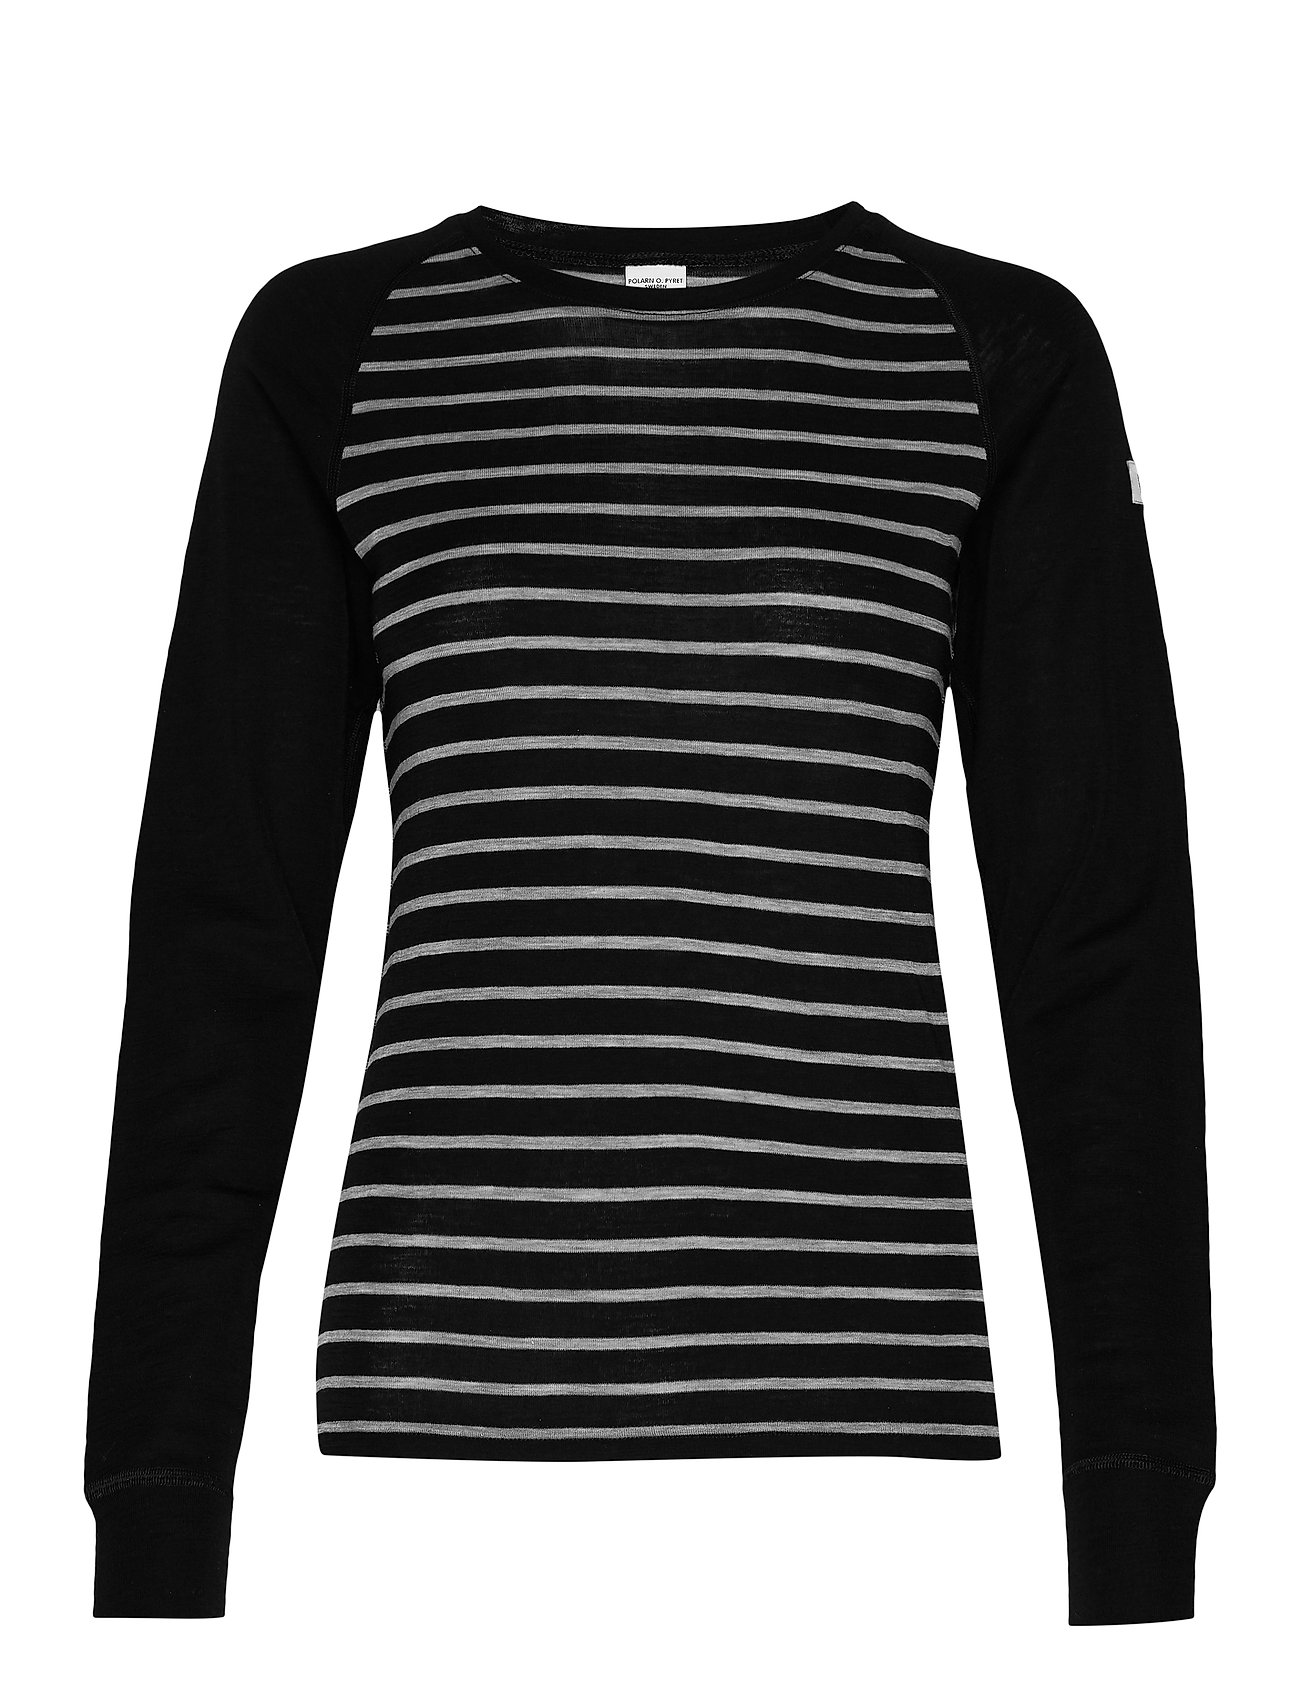 Polarn O. Pyret Long Sleeve Top Striped Adult - BLACK